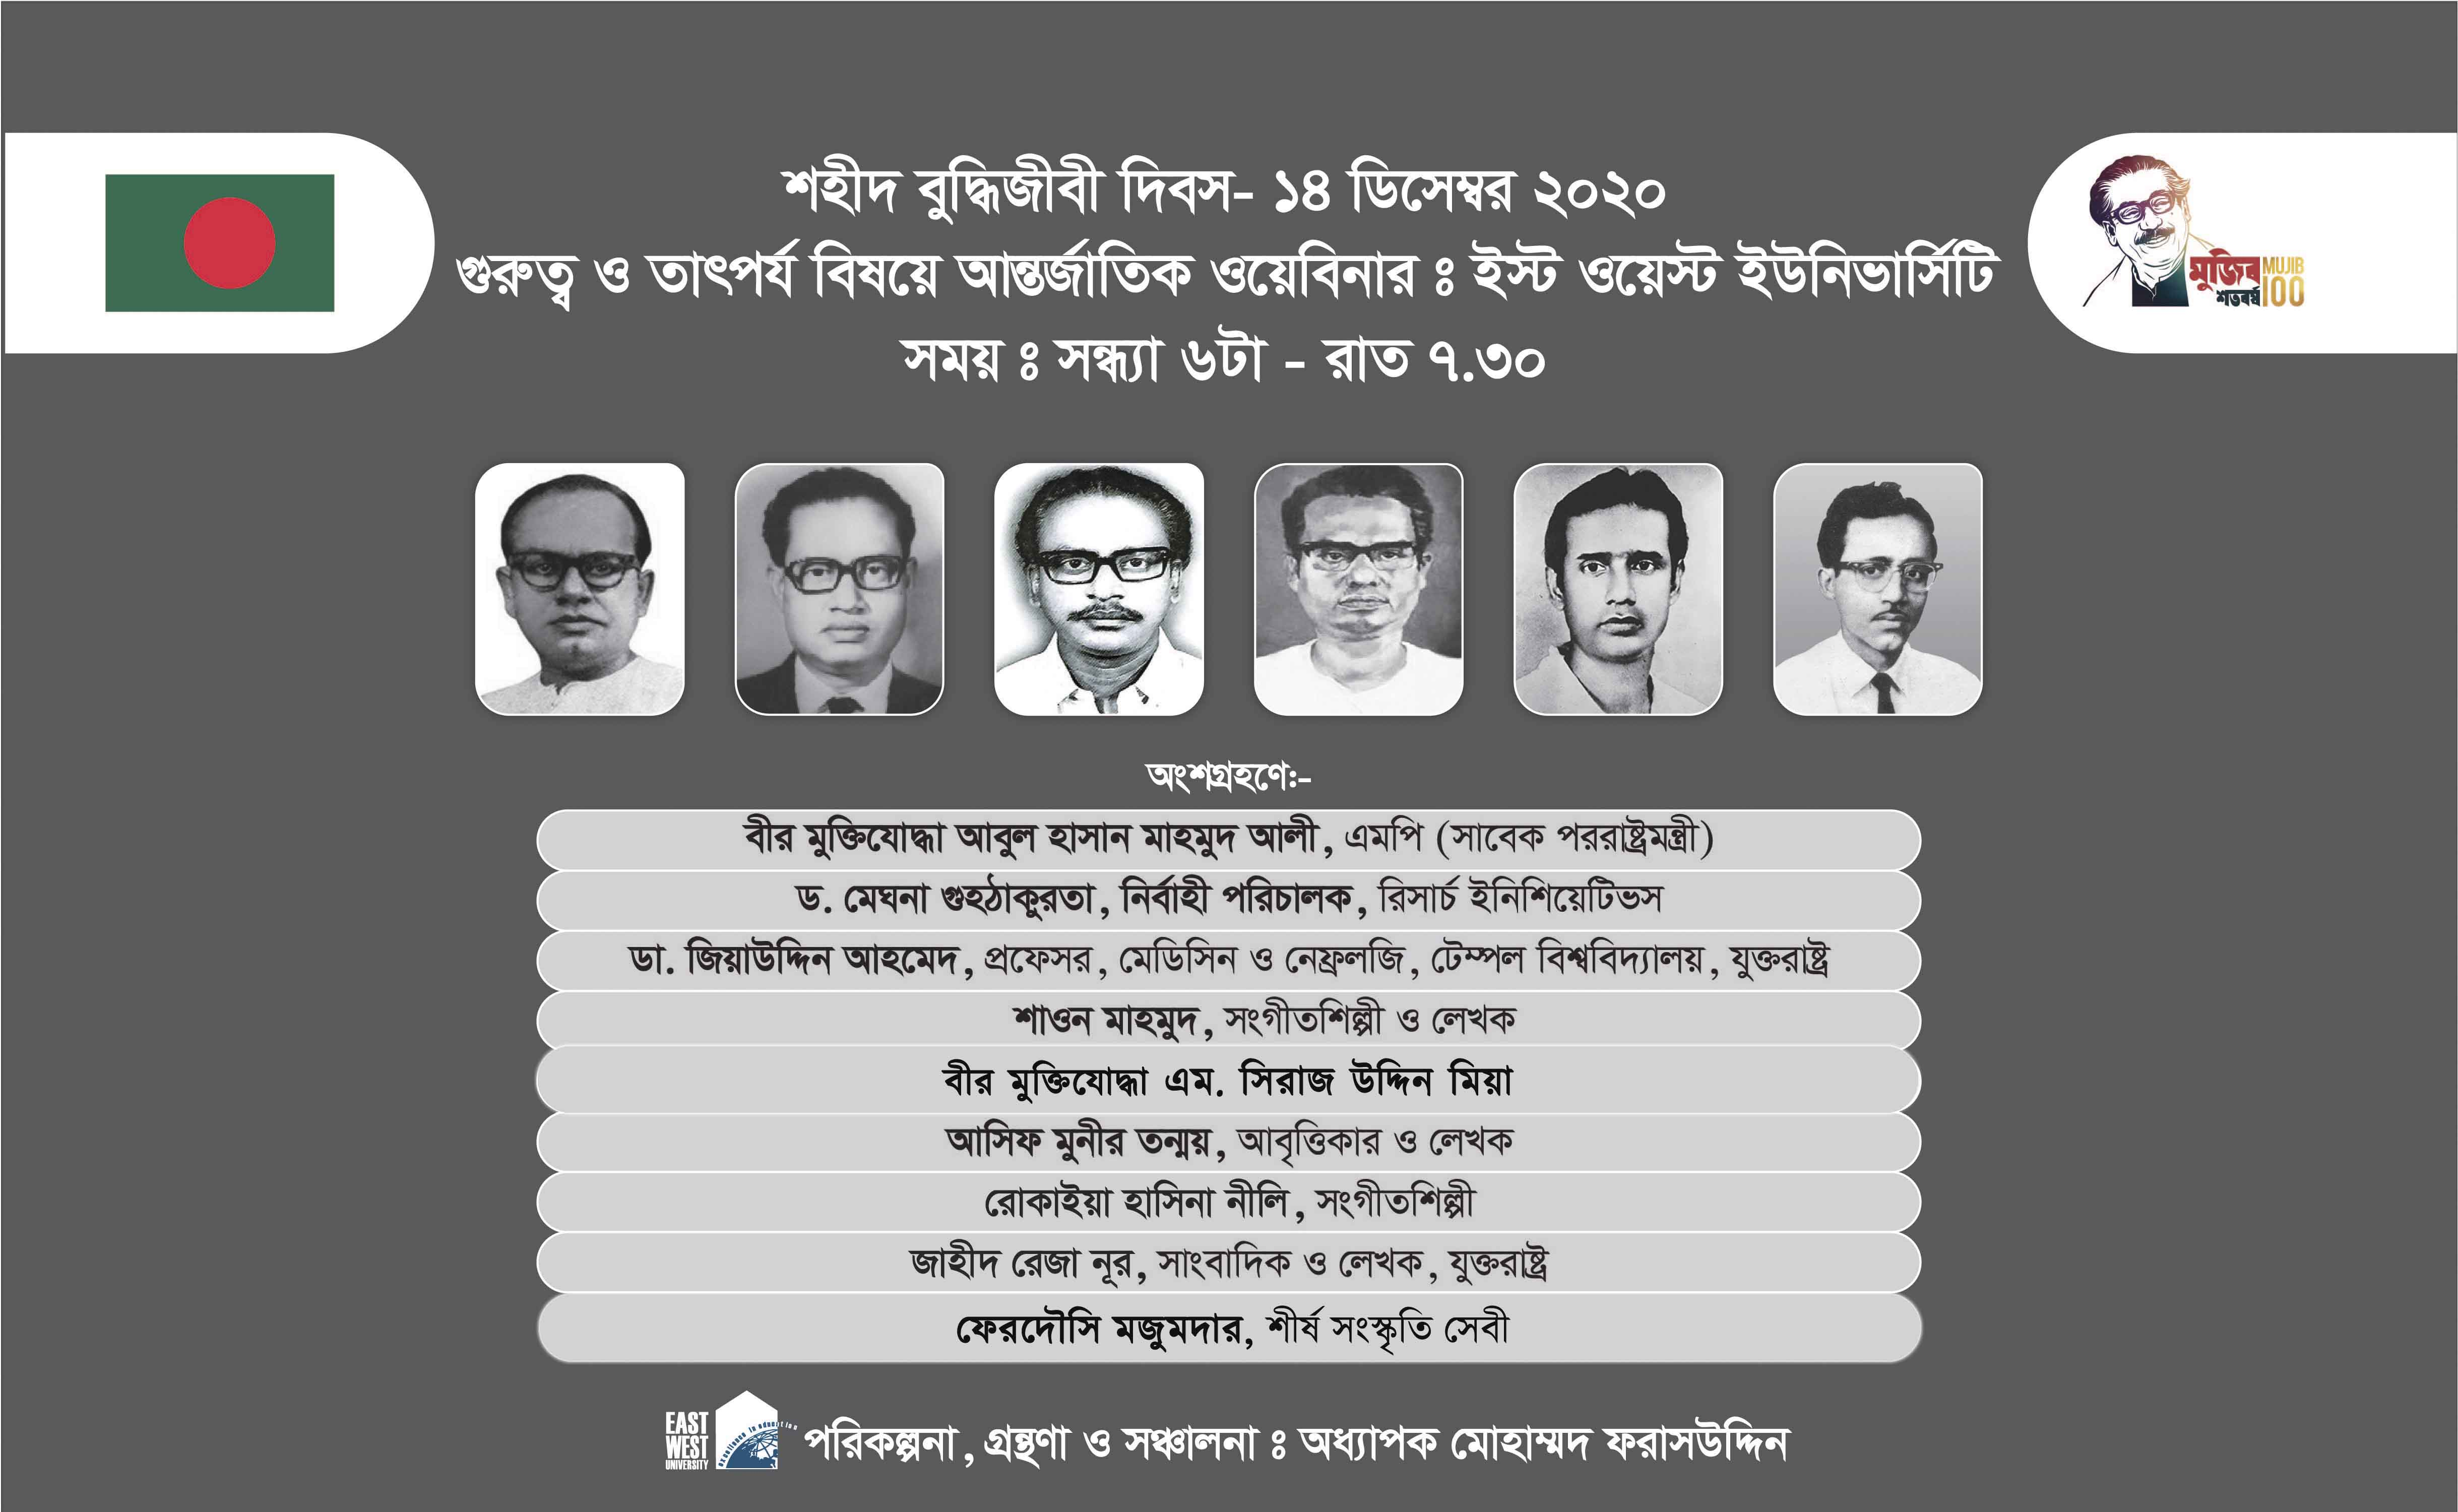 EWU Webinar Urge to build the Nation as the Martyred Intellectuals Dreamed